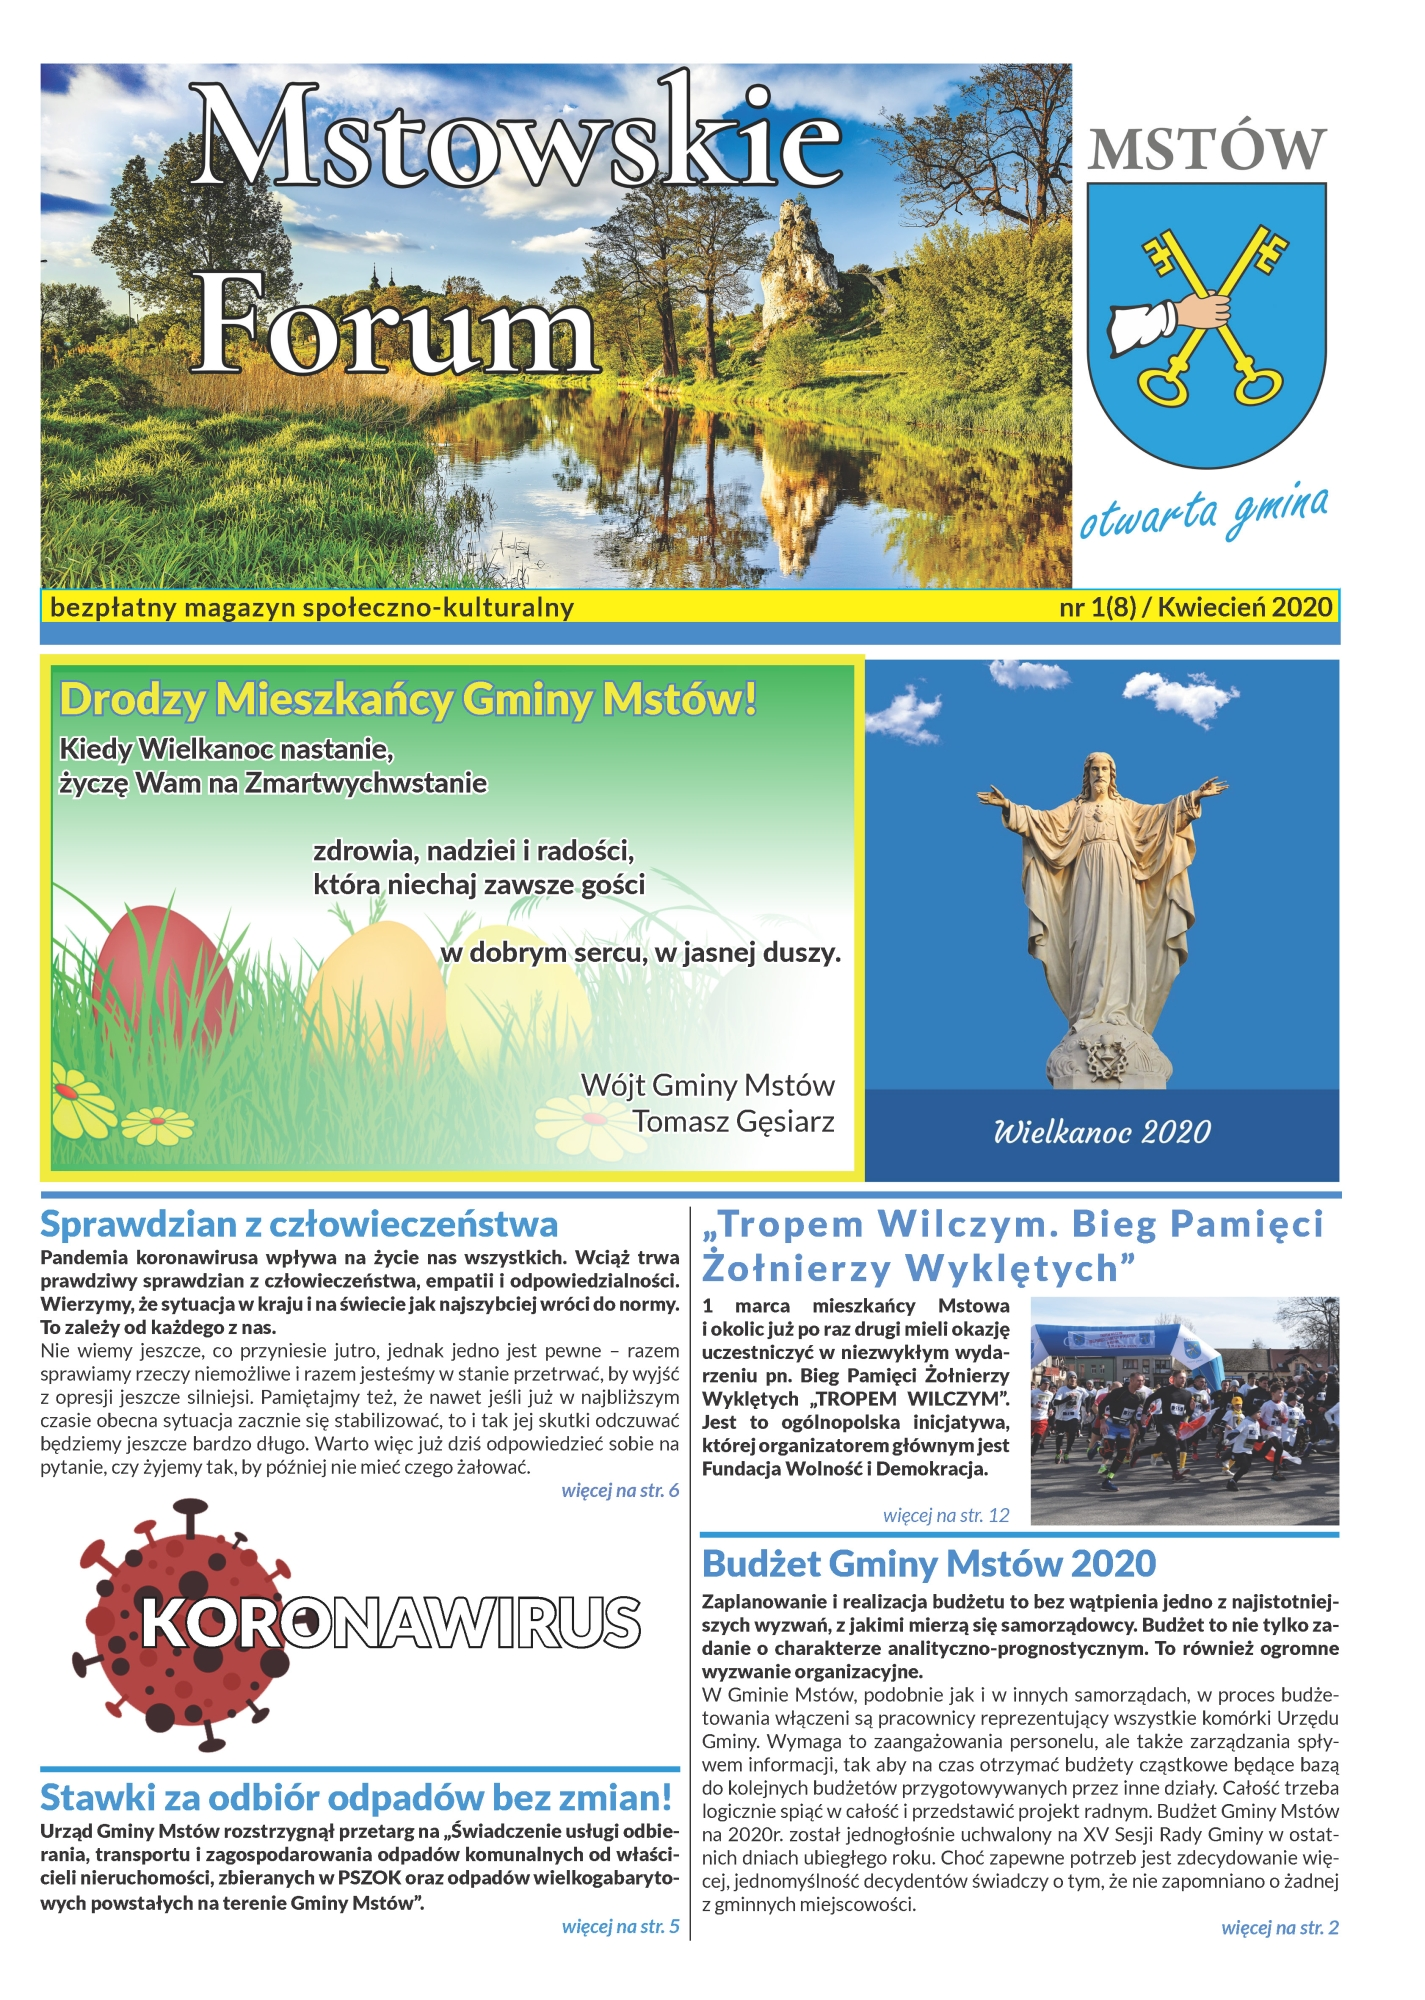 Str1-Mstowskie-Forum-4_2020